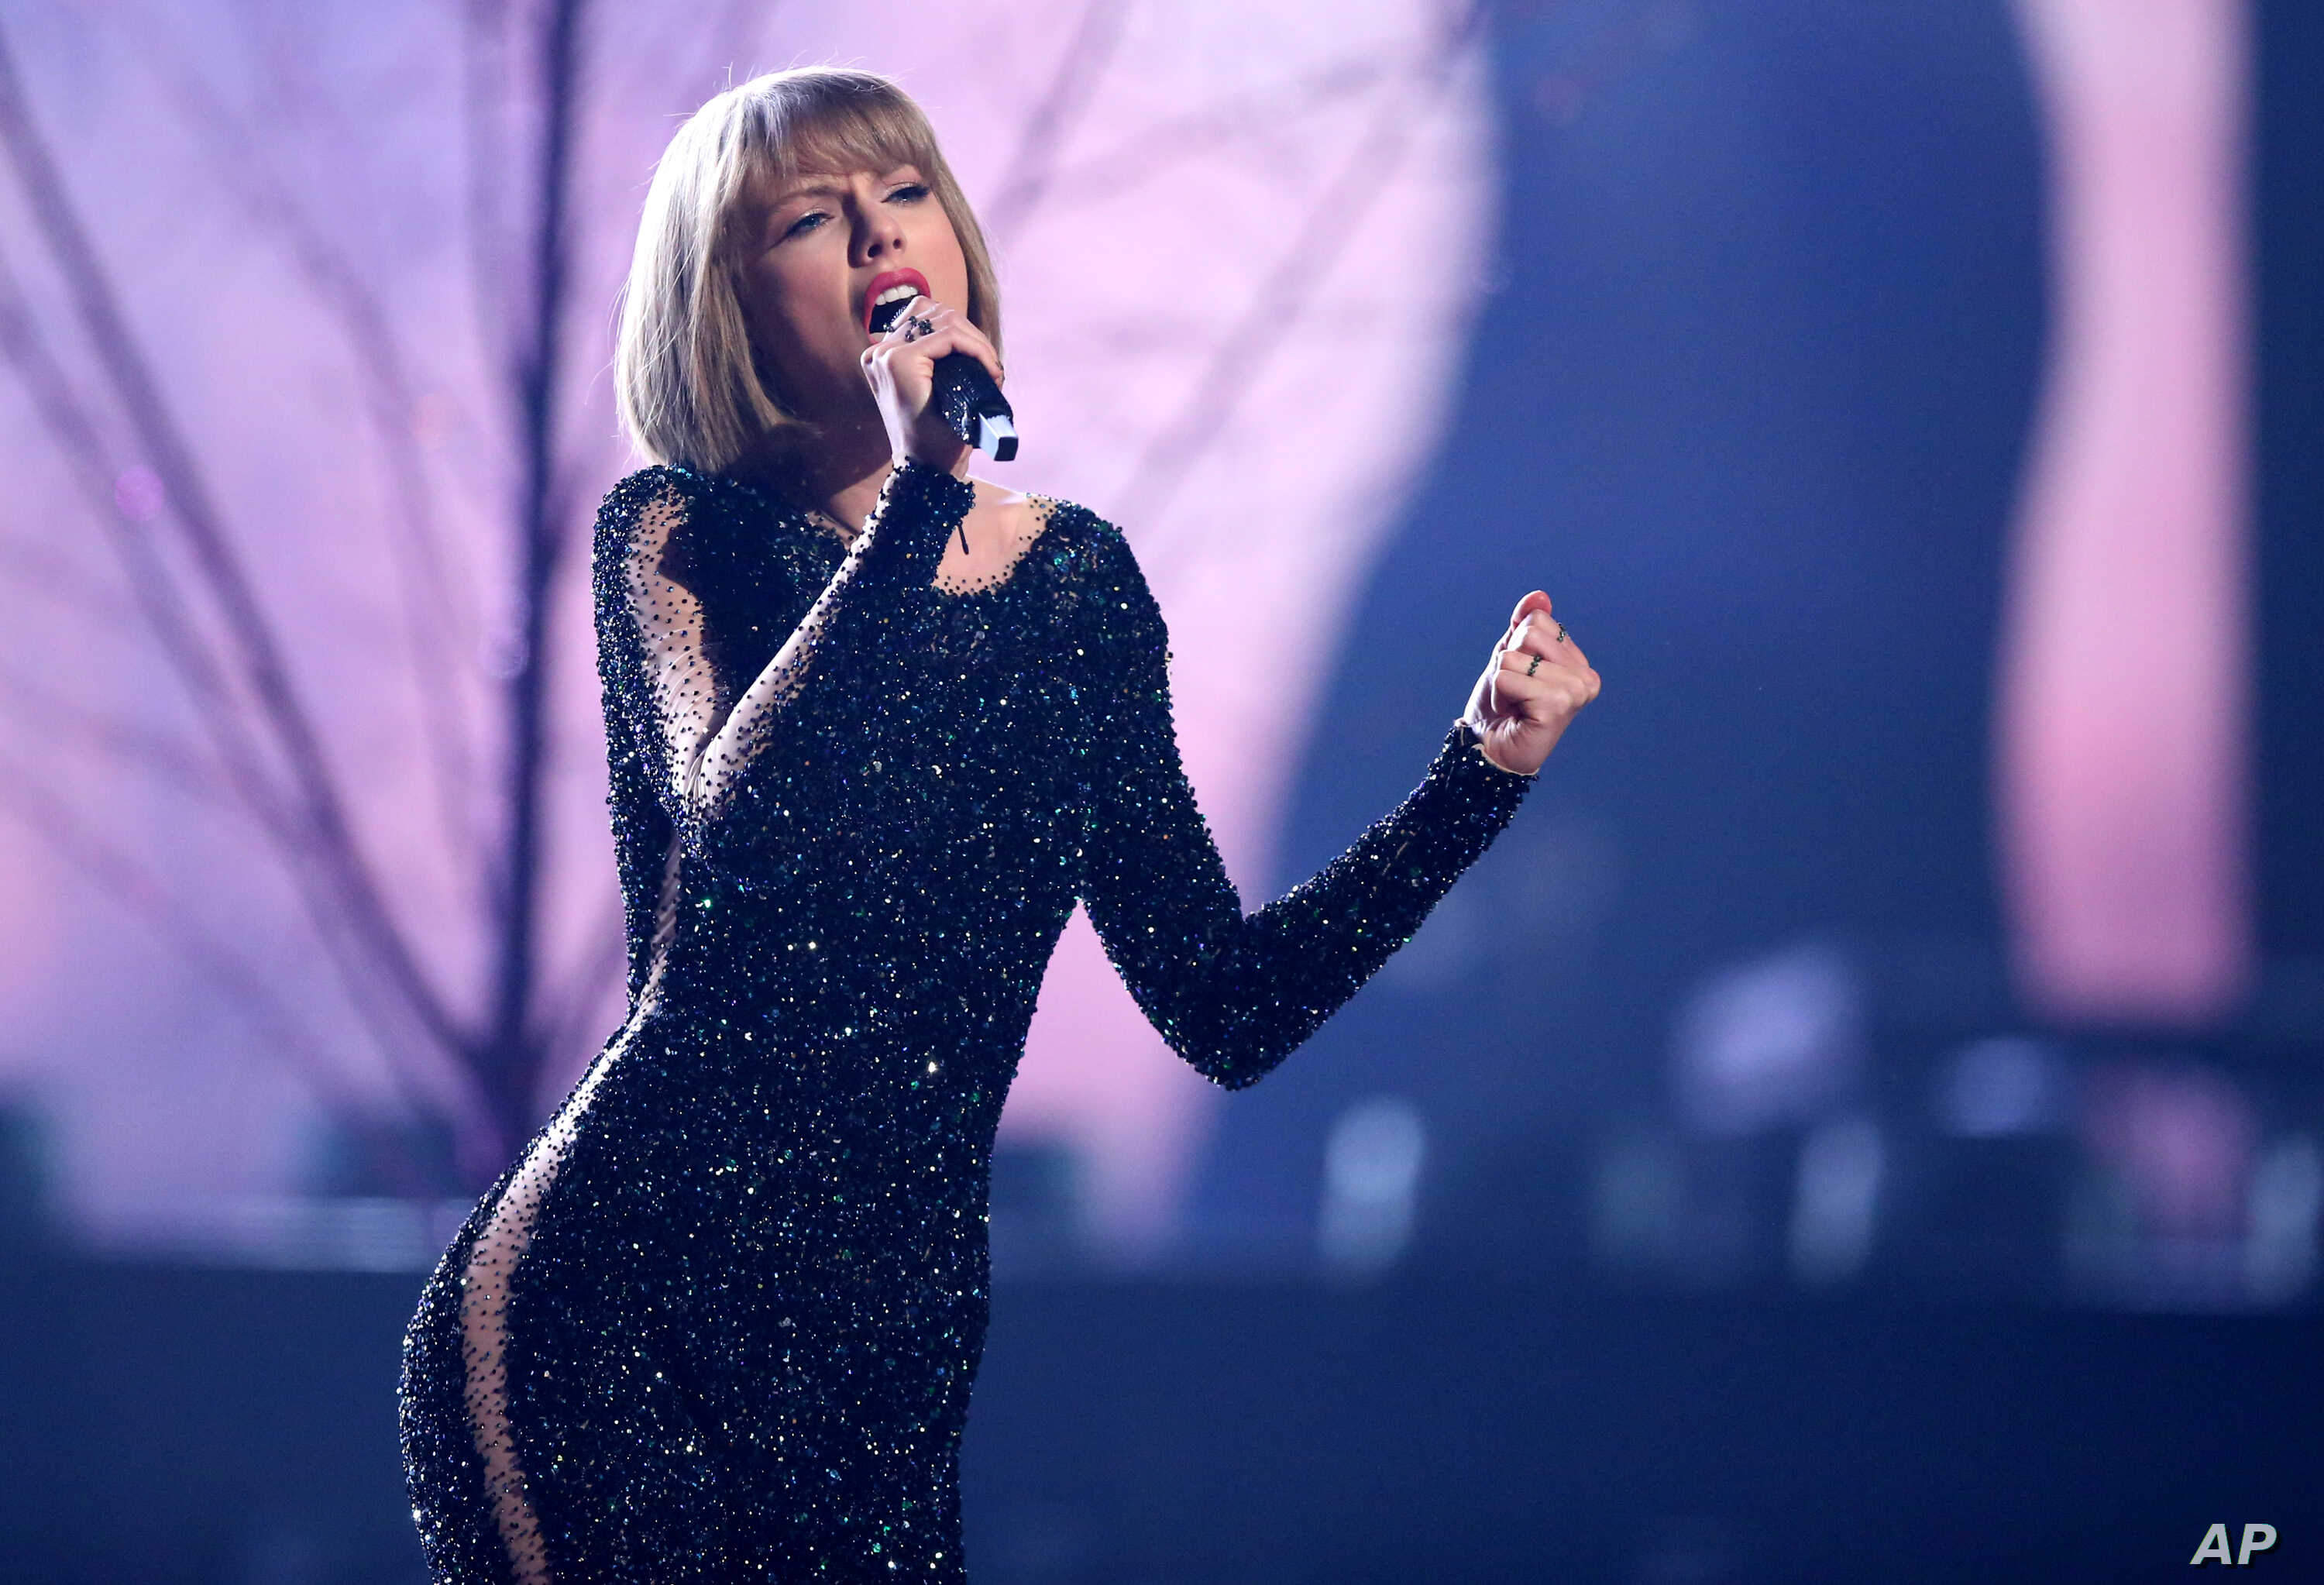 Taylor Swift Tops Forbes 2016 List Of Highest Paid Women In Music Voice Of America English